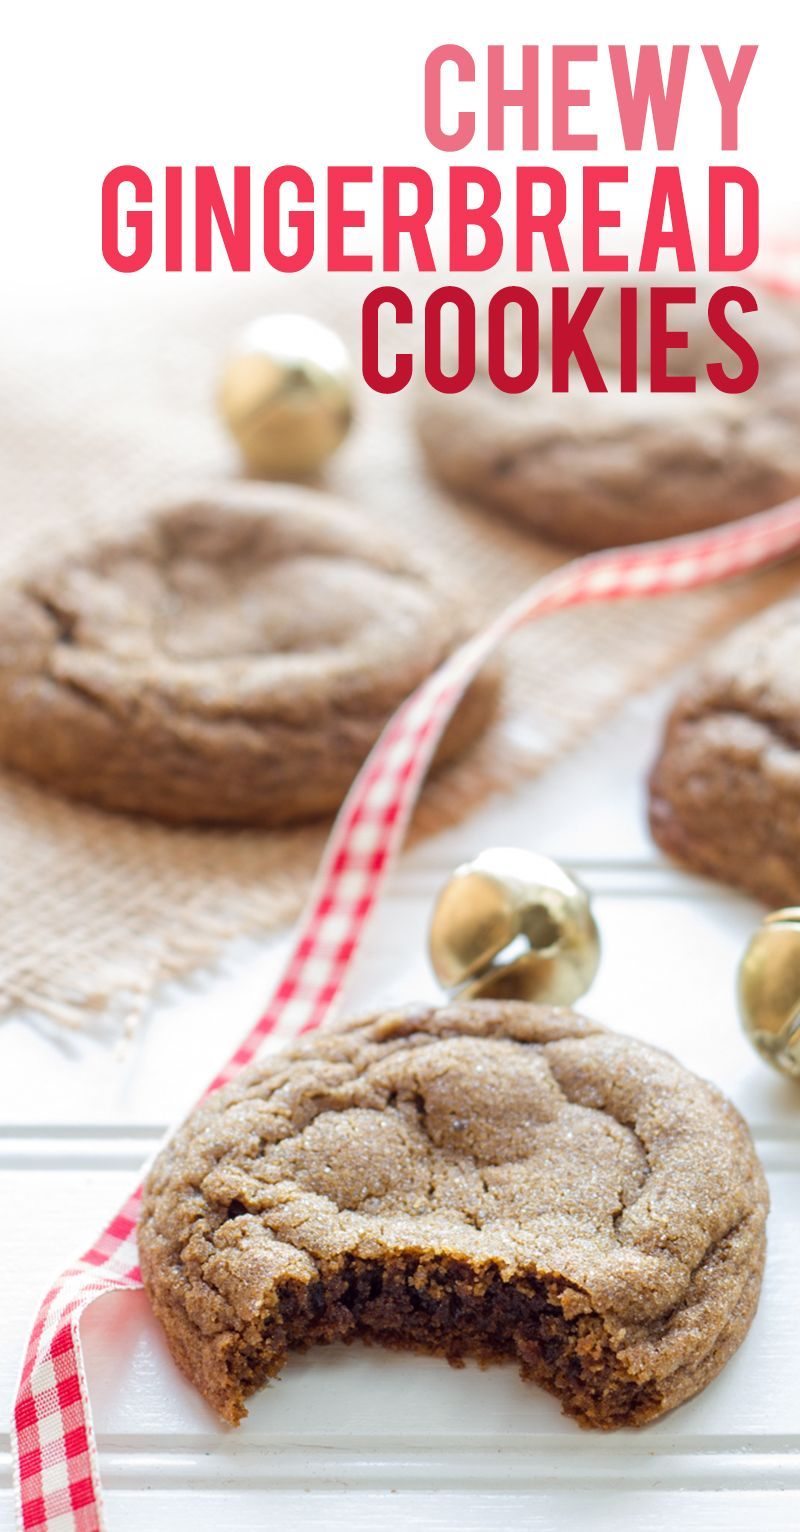 about Chewy gingerbread cookies on Pinterest | Gingerbread cookies ...